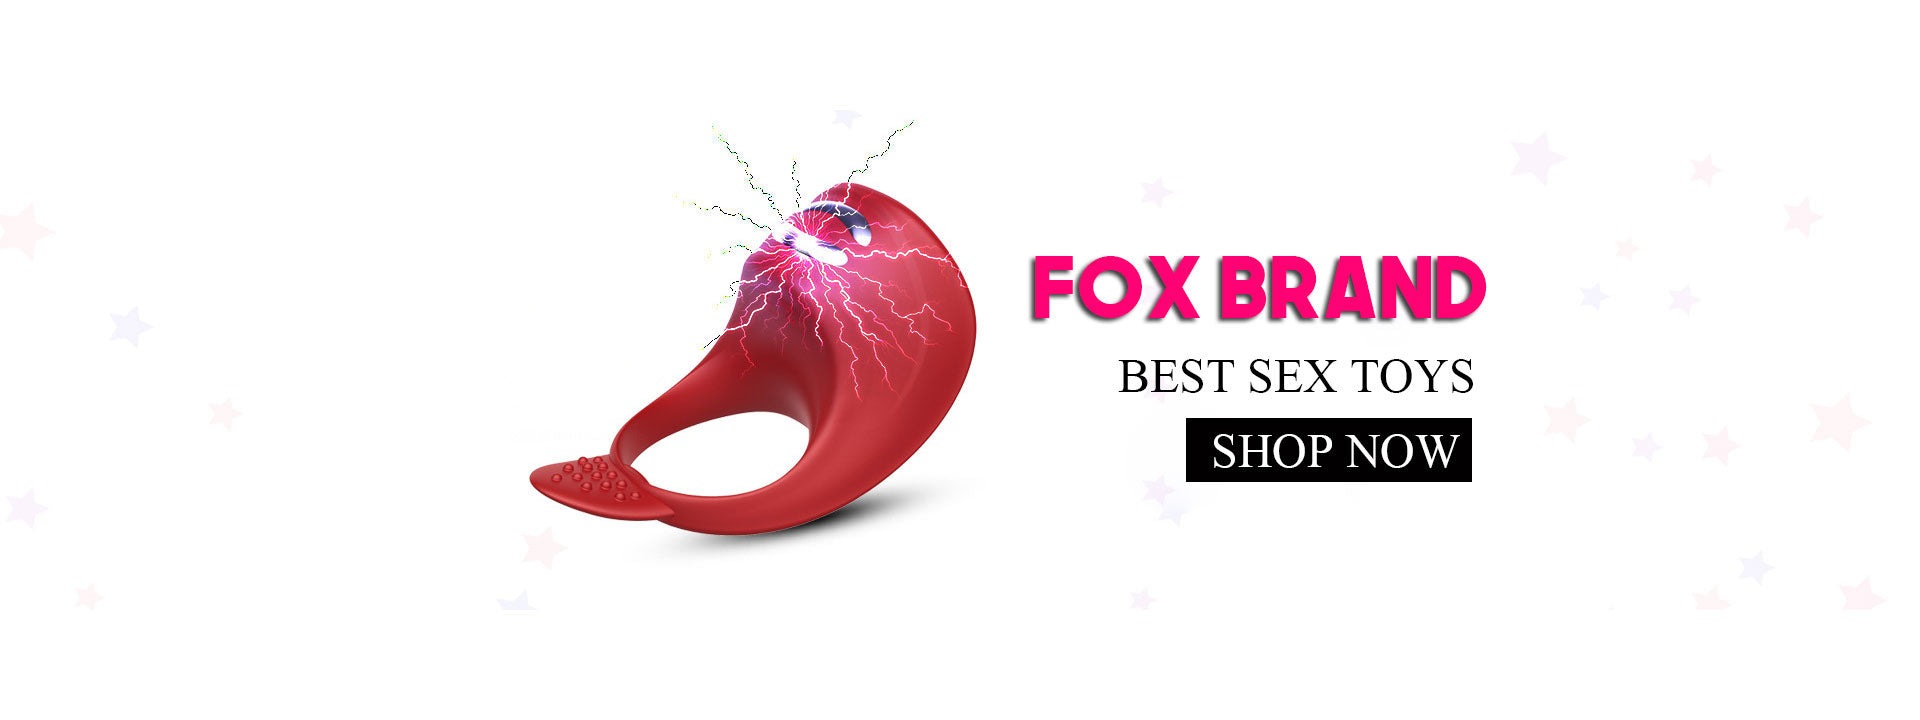 fox-brand-collection-banner